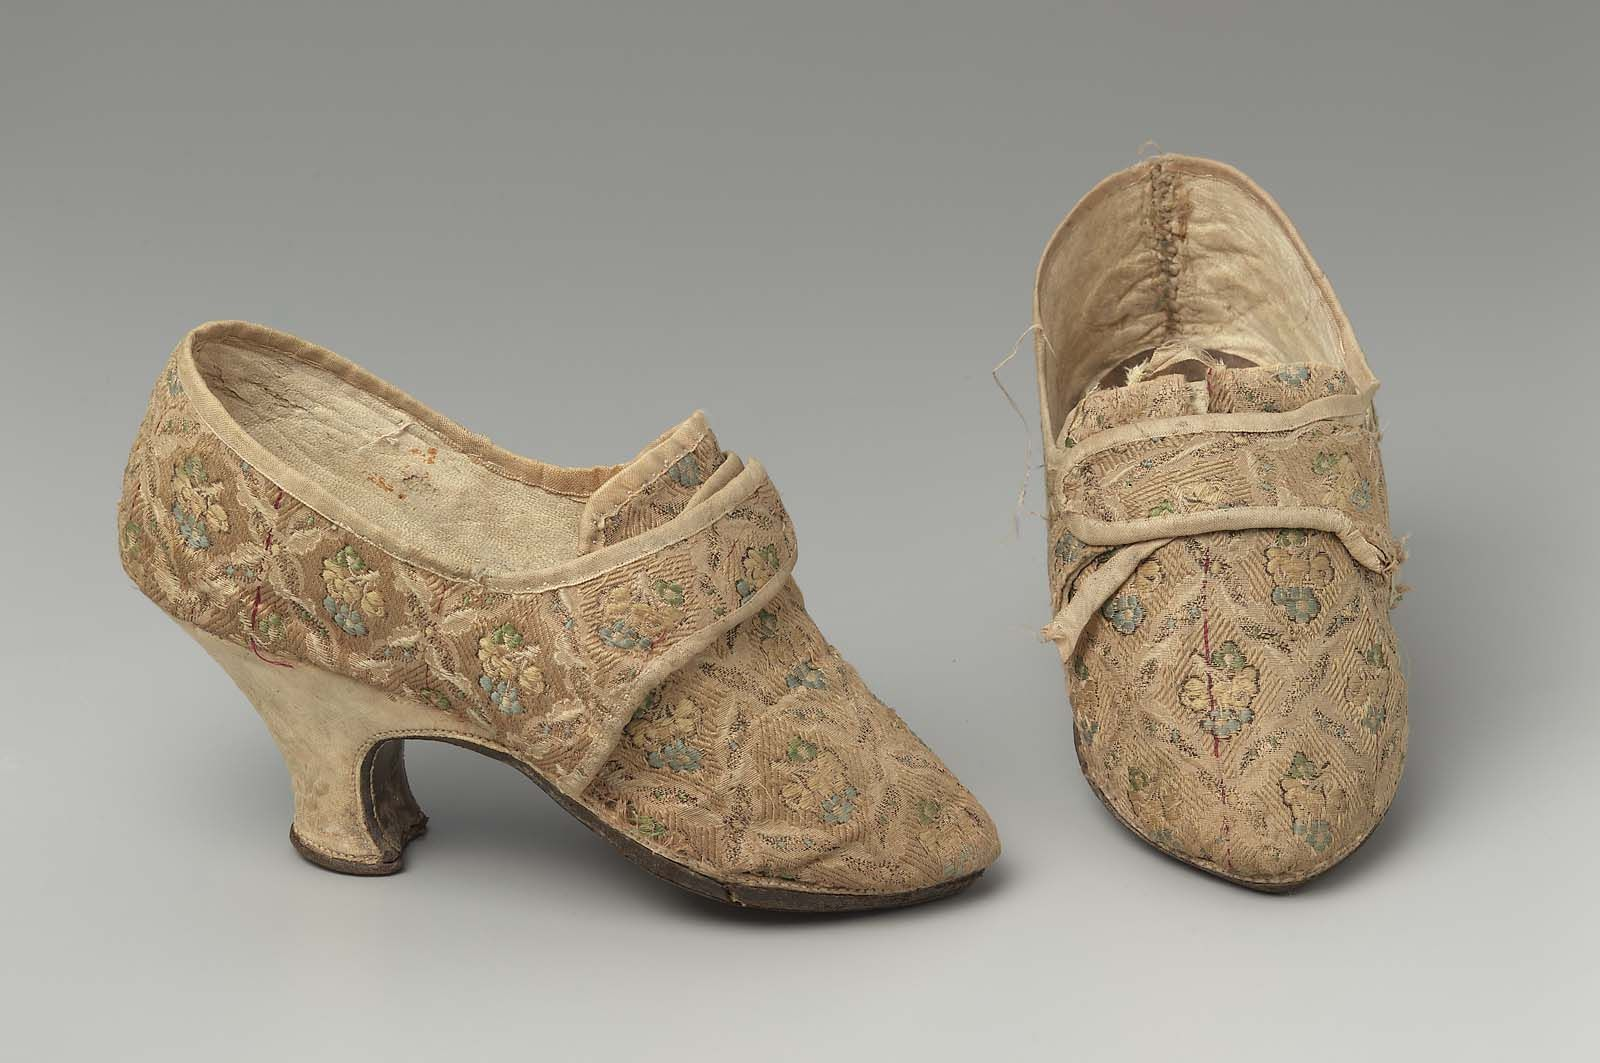 Pair Of Women S Shoes Europe 1750 1800 Beige Figured Silk Upper Brocaded With Polychrome Silk Yarns In Motif Of Flor Women Shoes Century Shoes Vintage Shoes